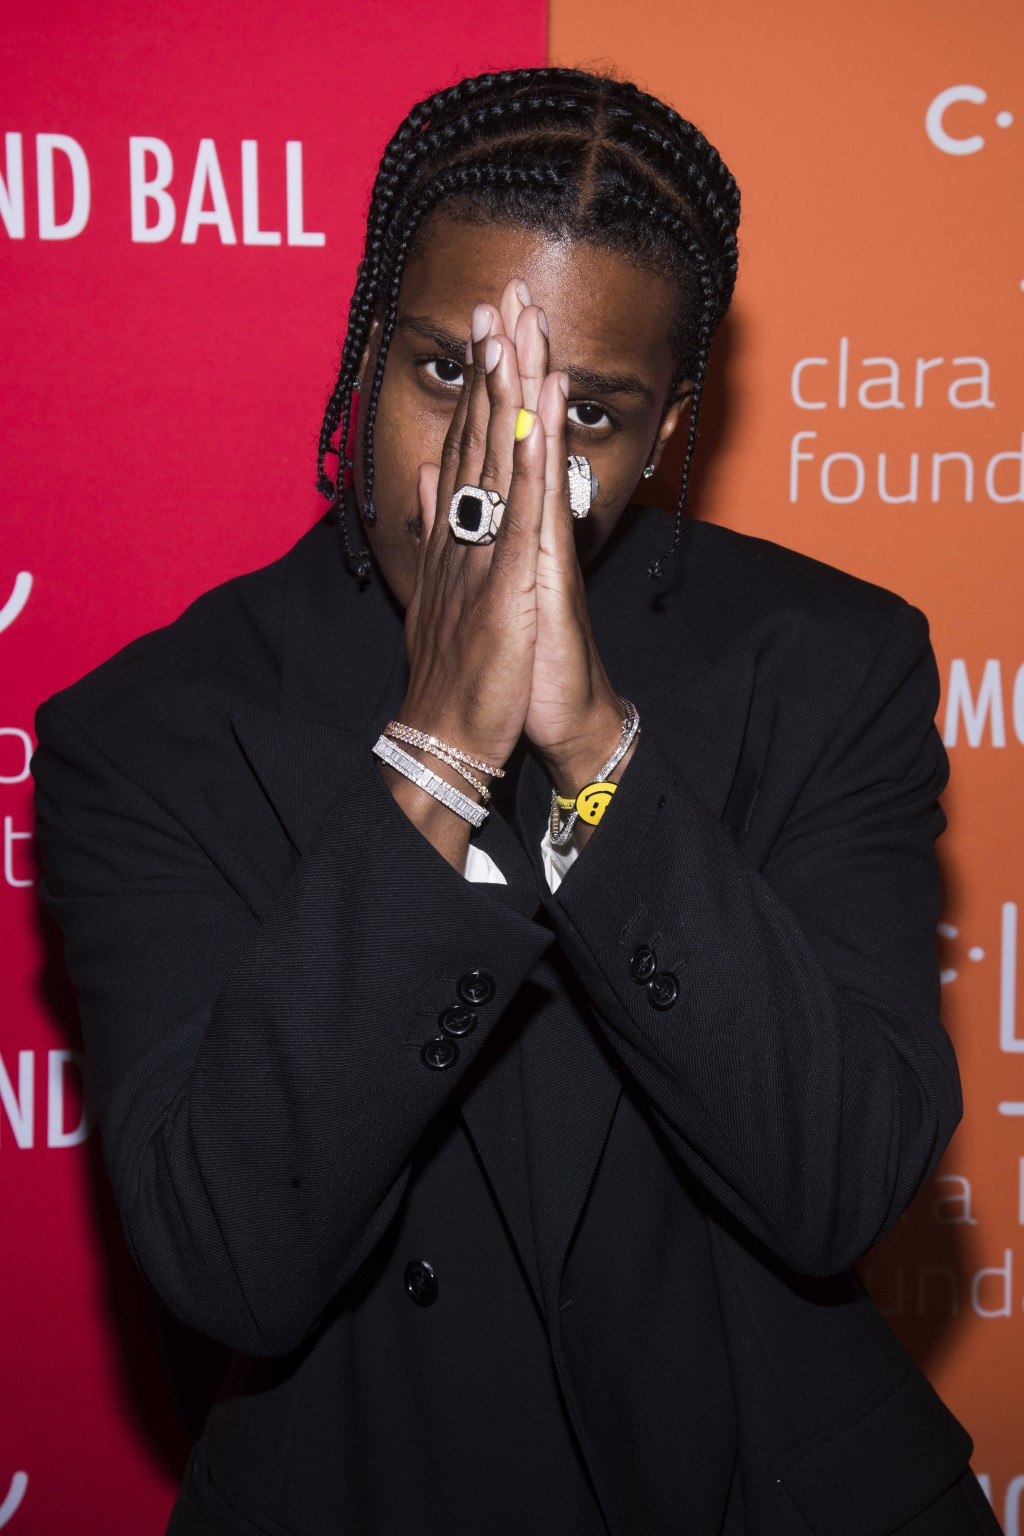 A$AP Rocky attends the 5th annual Diamond Ball benefit gala at Cipriani Wall Street on Thursday, Sept. 12, 2019, in New York. (Photo by Charles Sykes/...